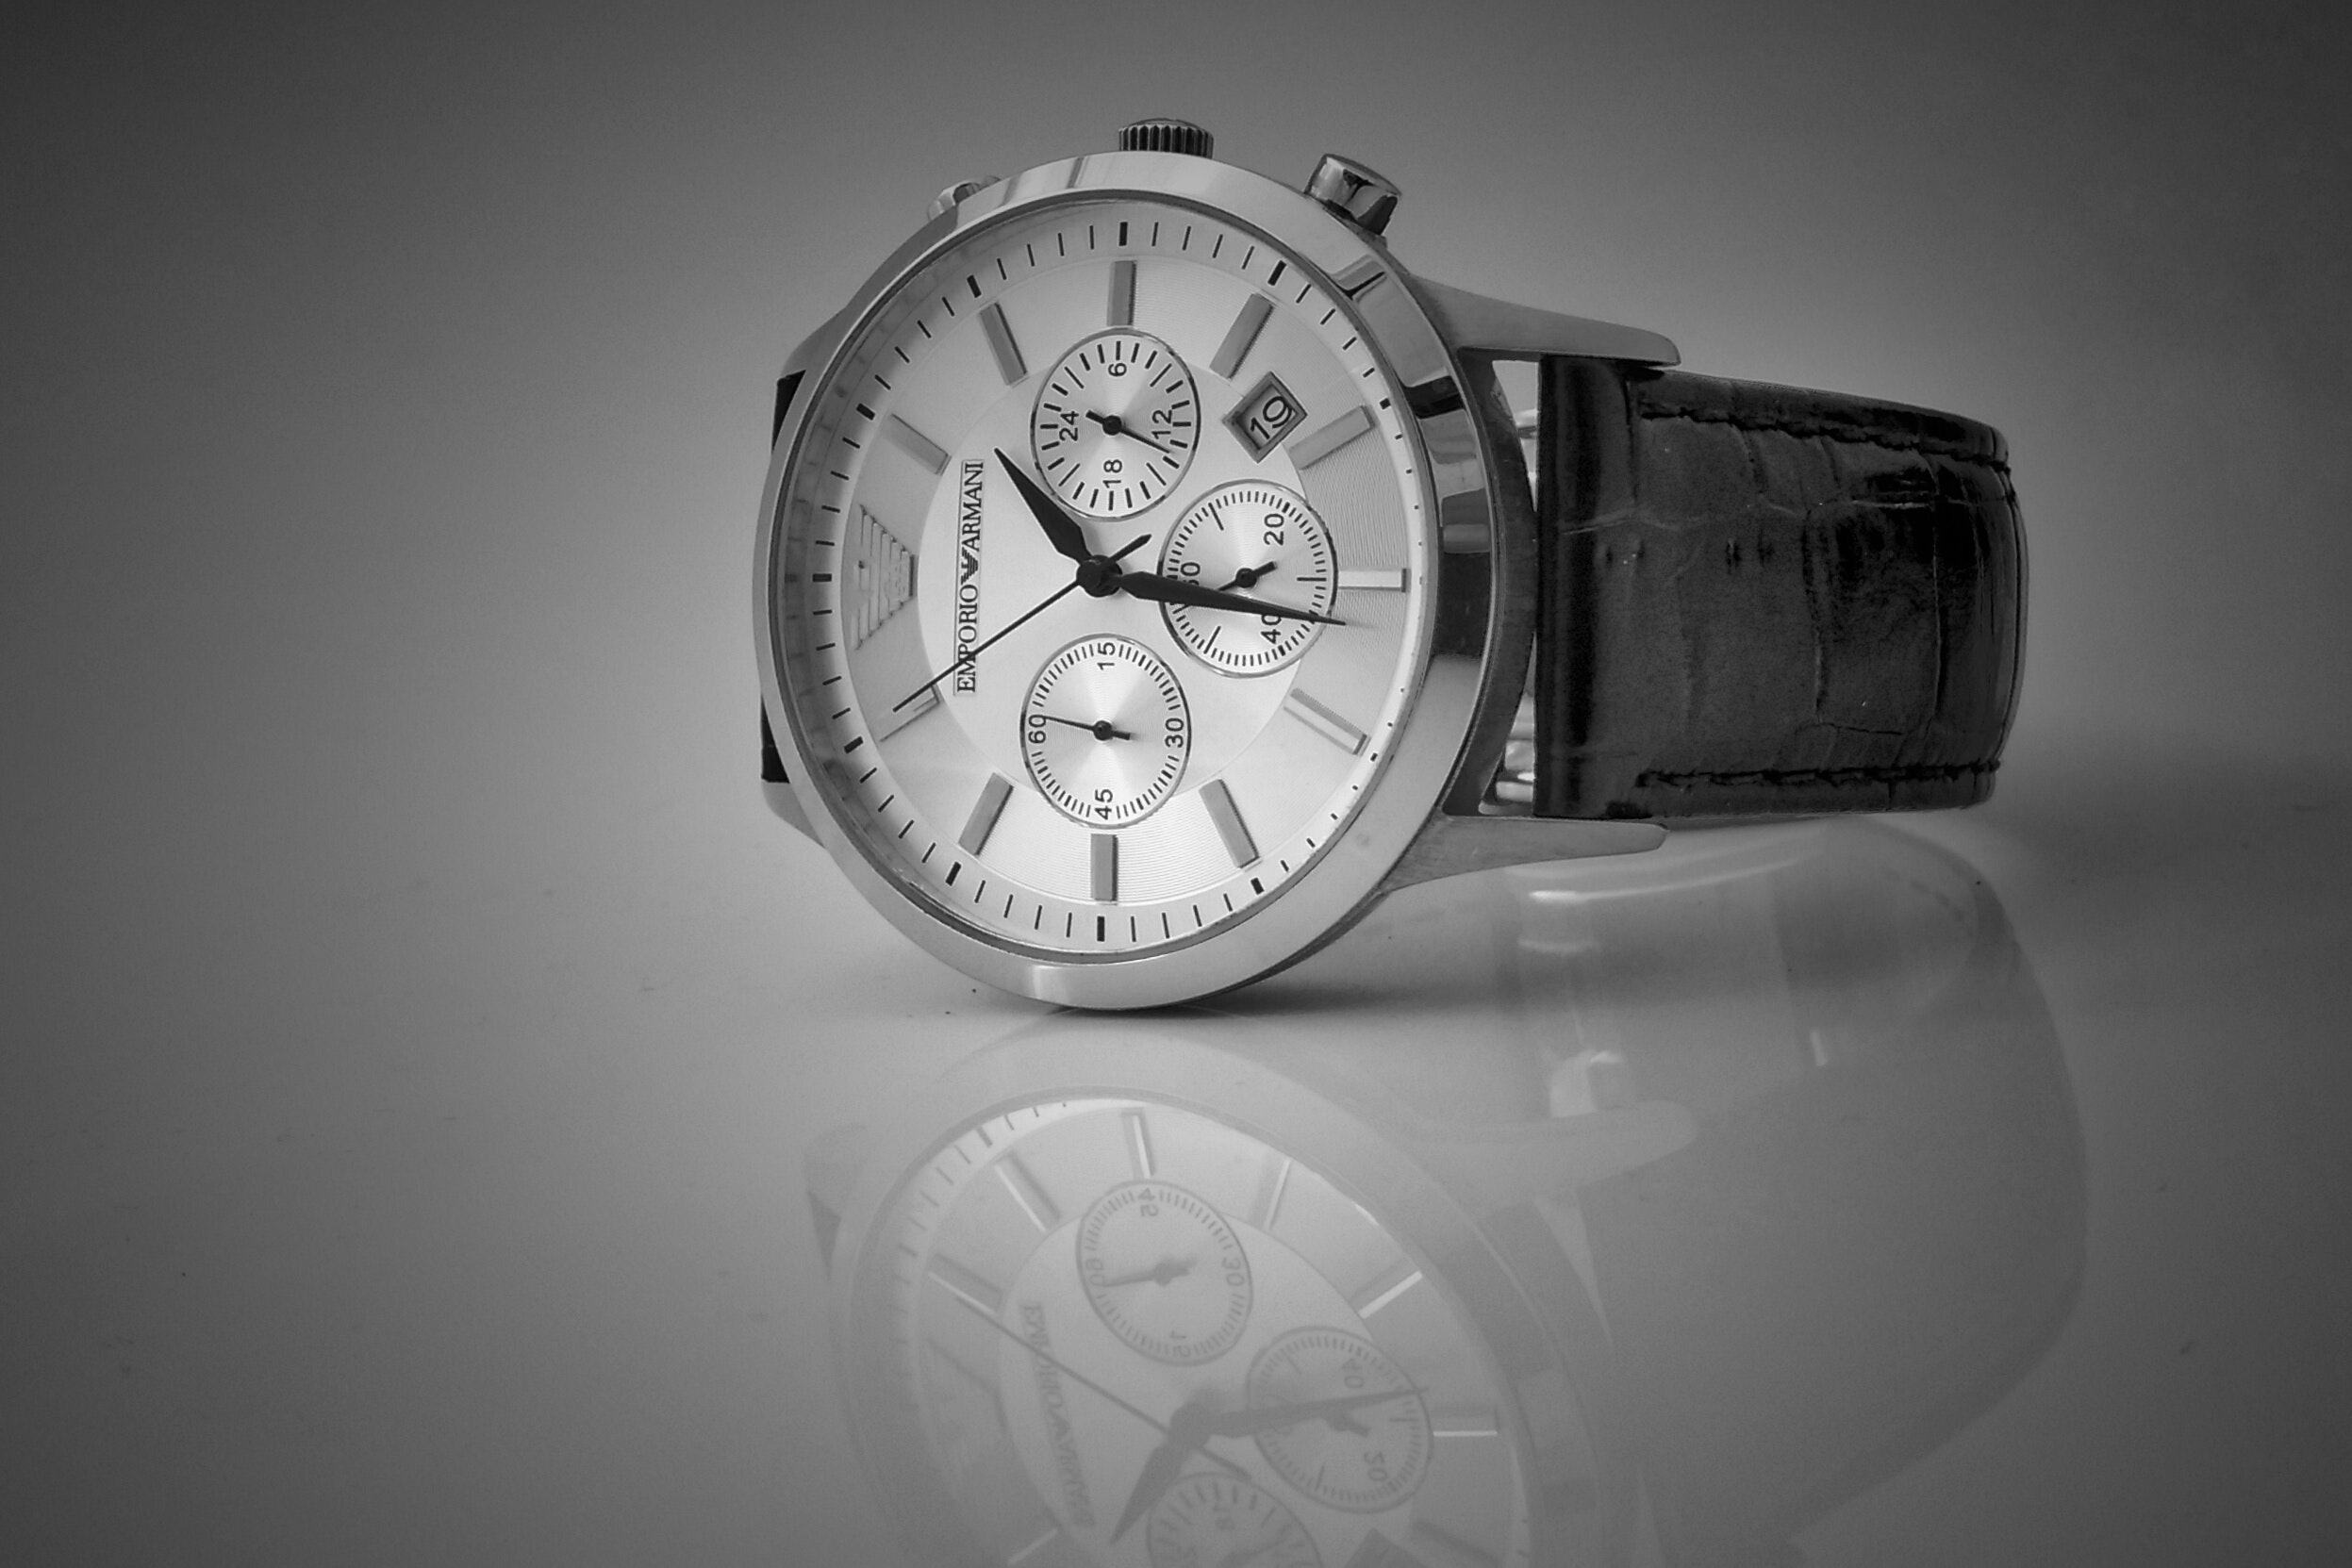 Quality product photograph - Watch with reflection